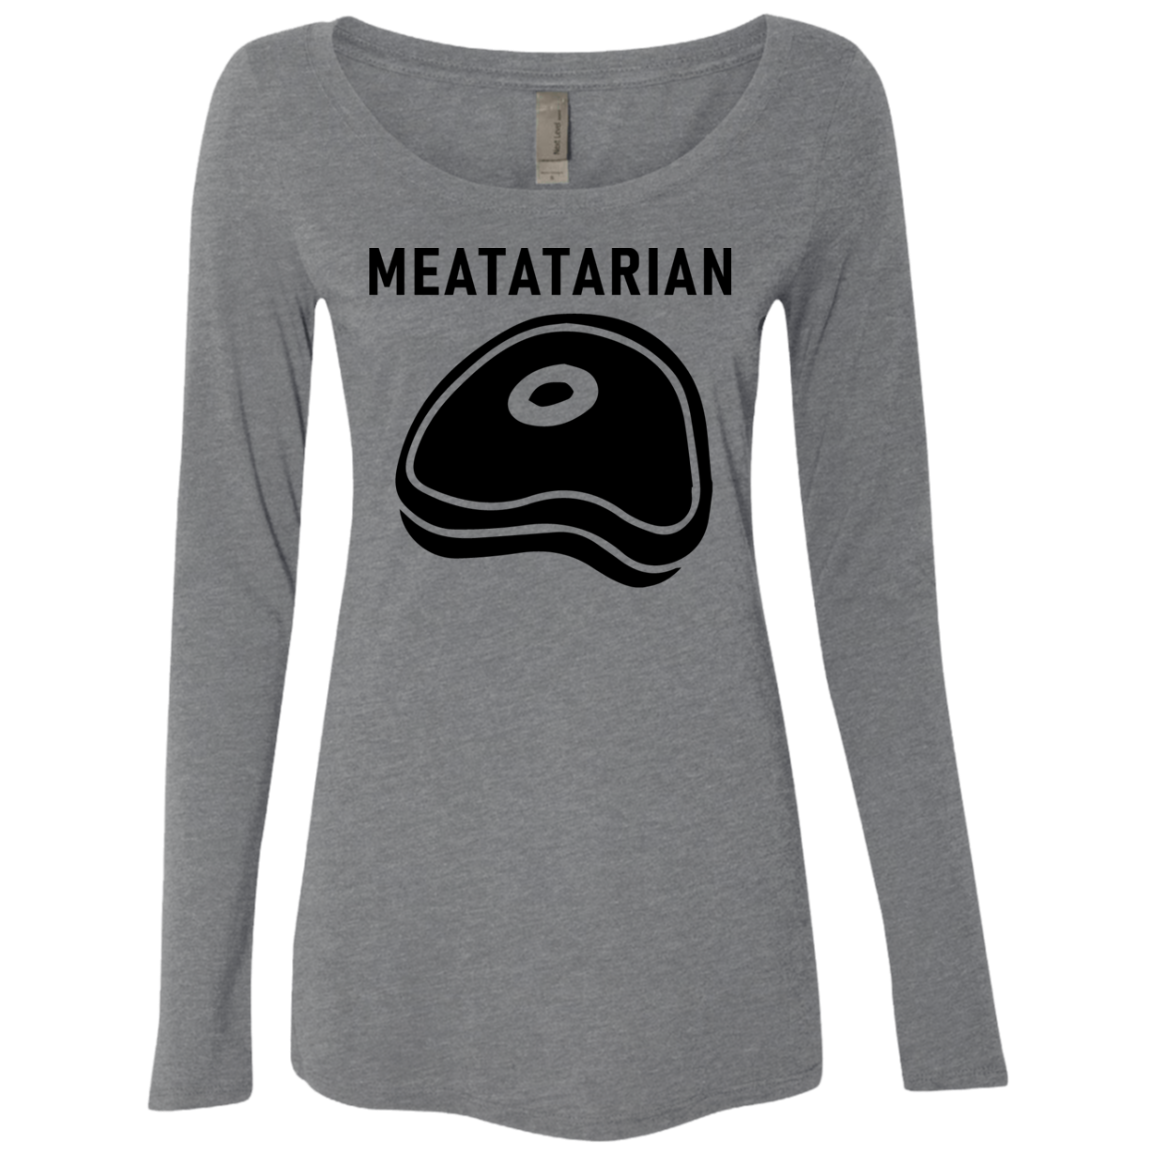 Meatatarian Women's Long Sleeve Tee